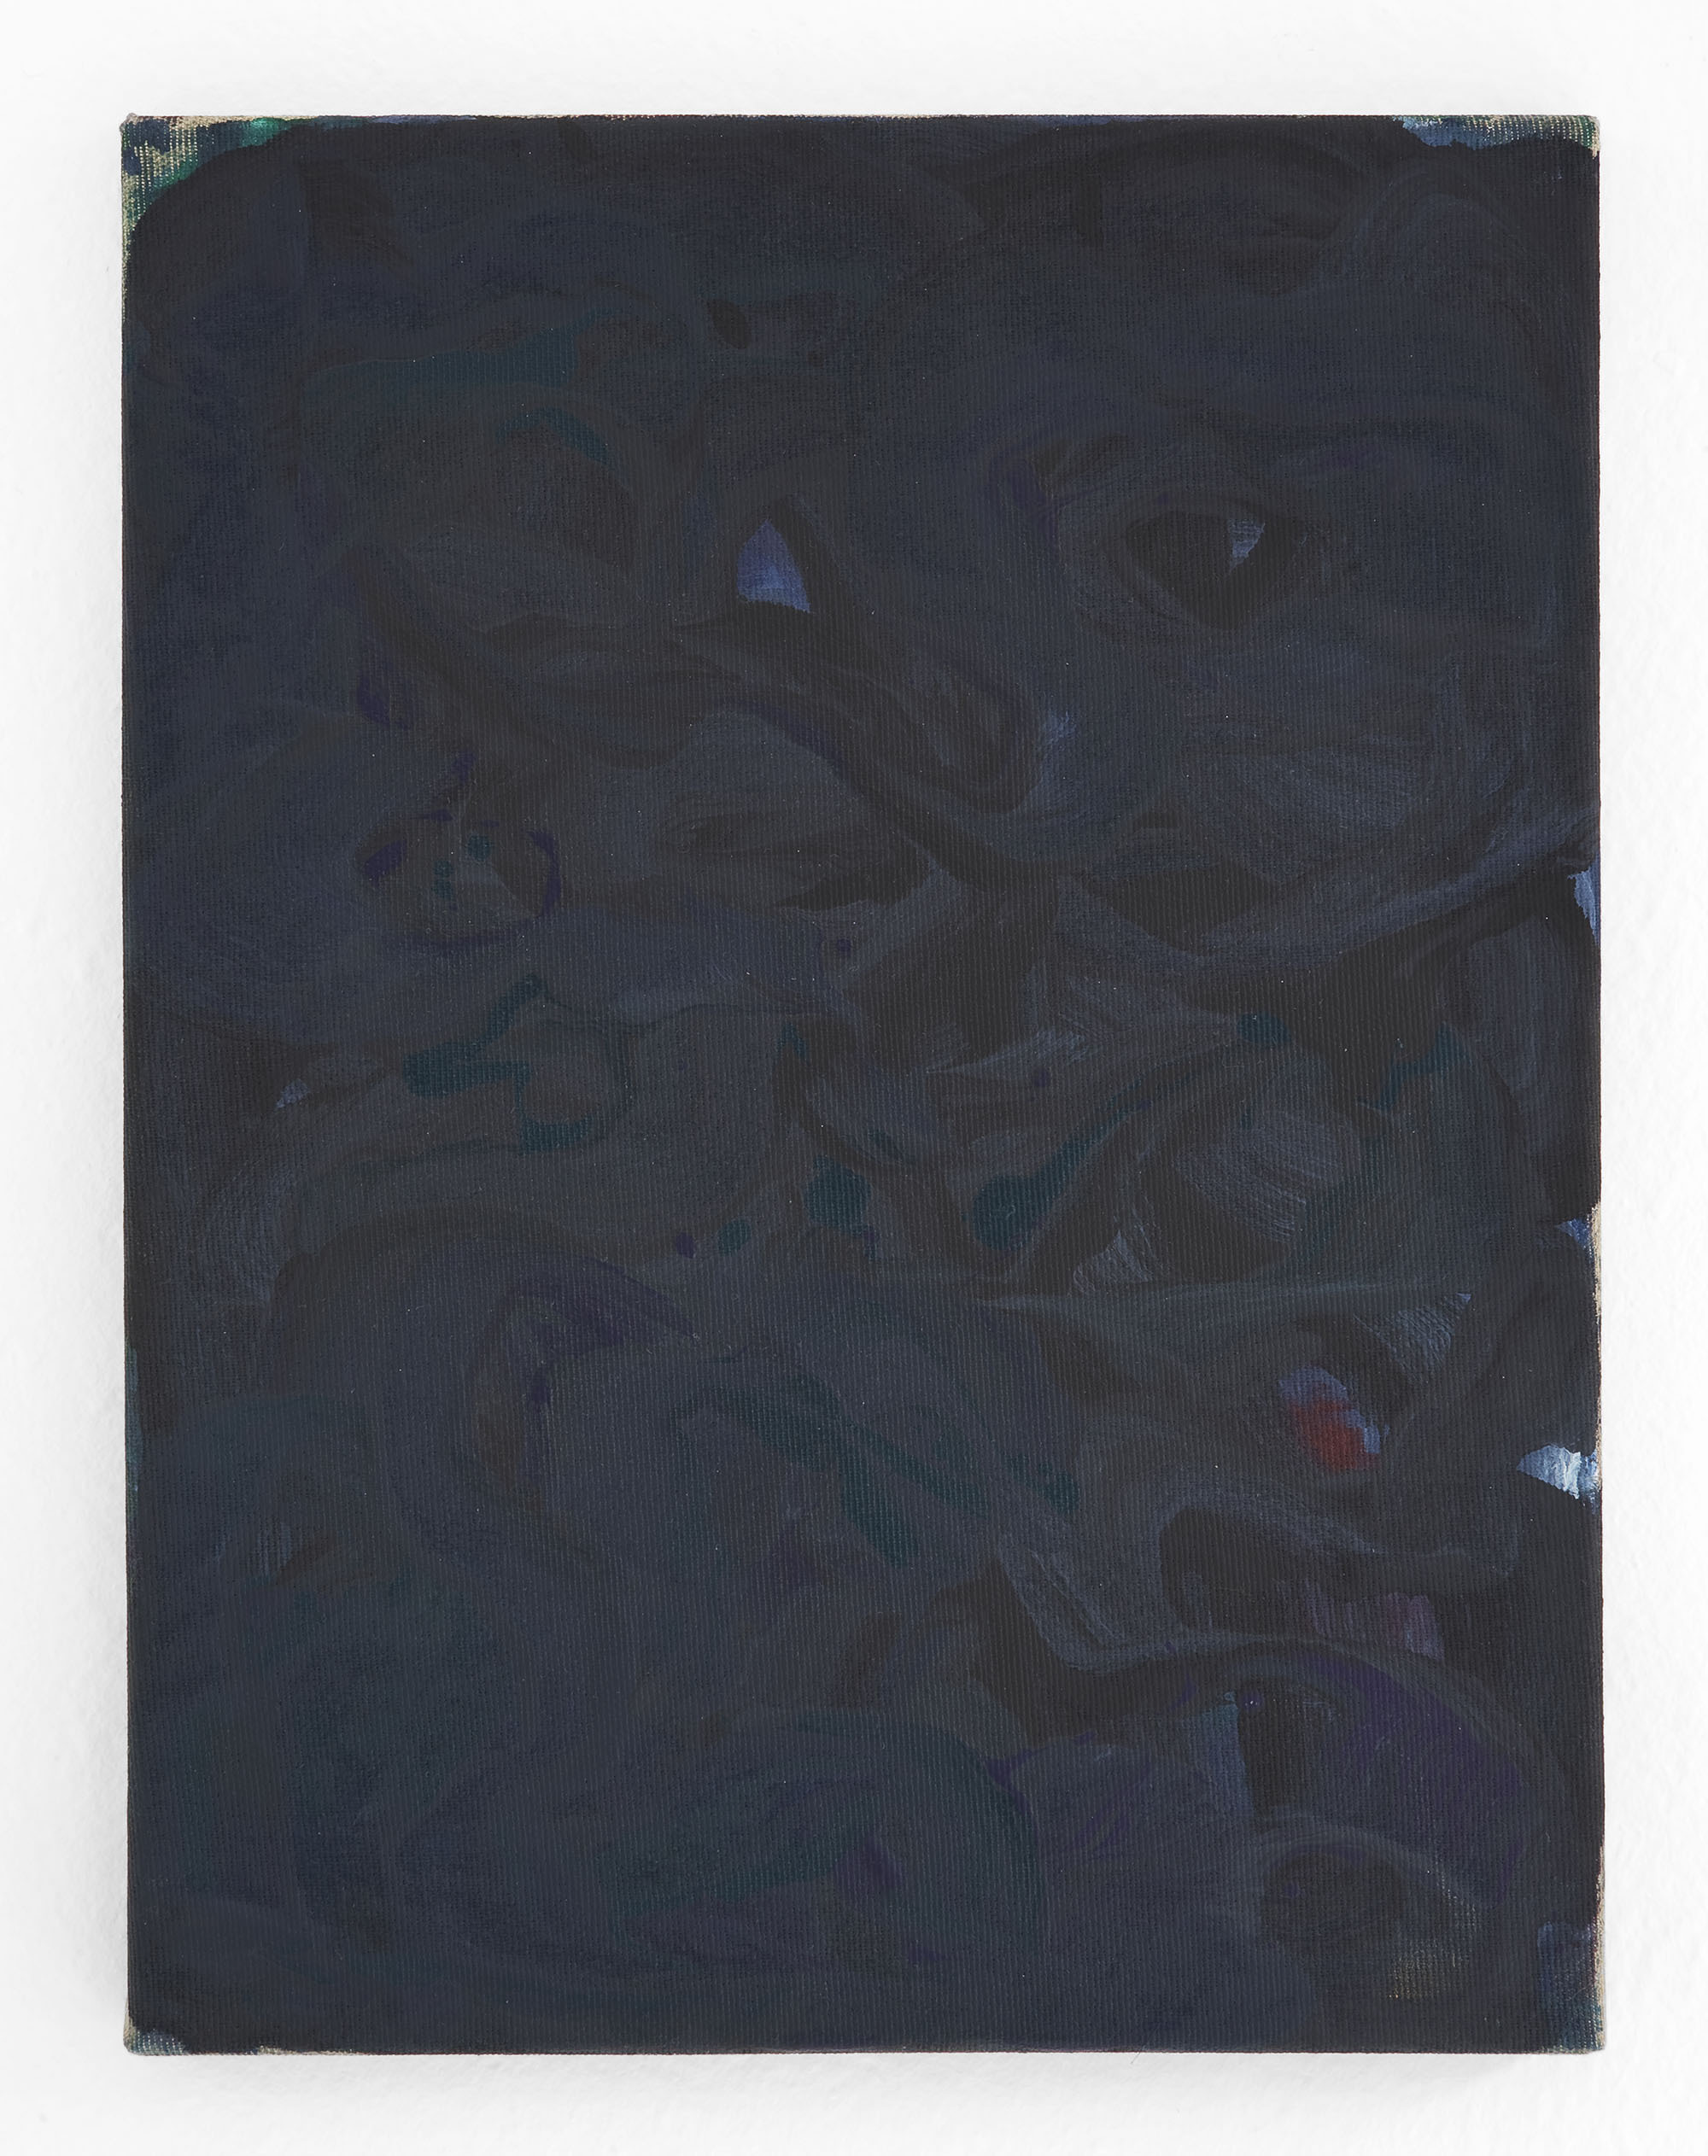 13 - Tyra Tingleff Untitled 2014 oil on canvas 40x30 cm - Courtesy Artist and Studiolo Milan - photo Filippo Armellin